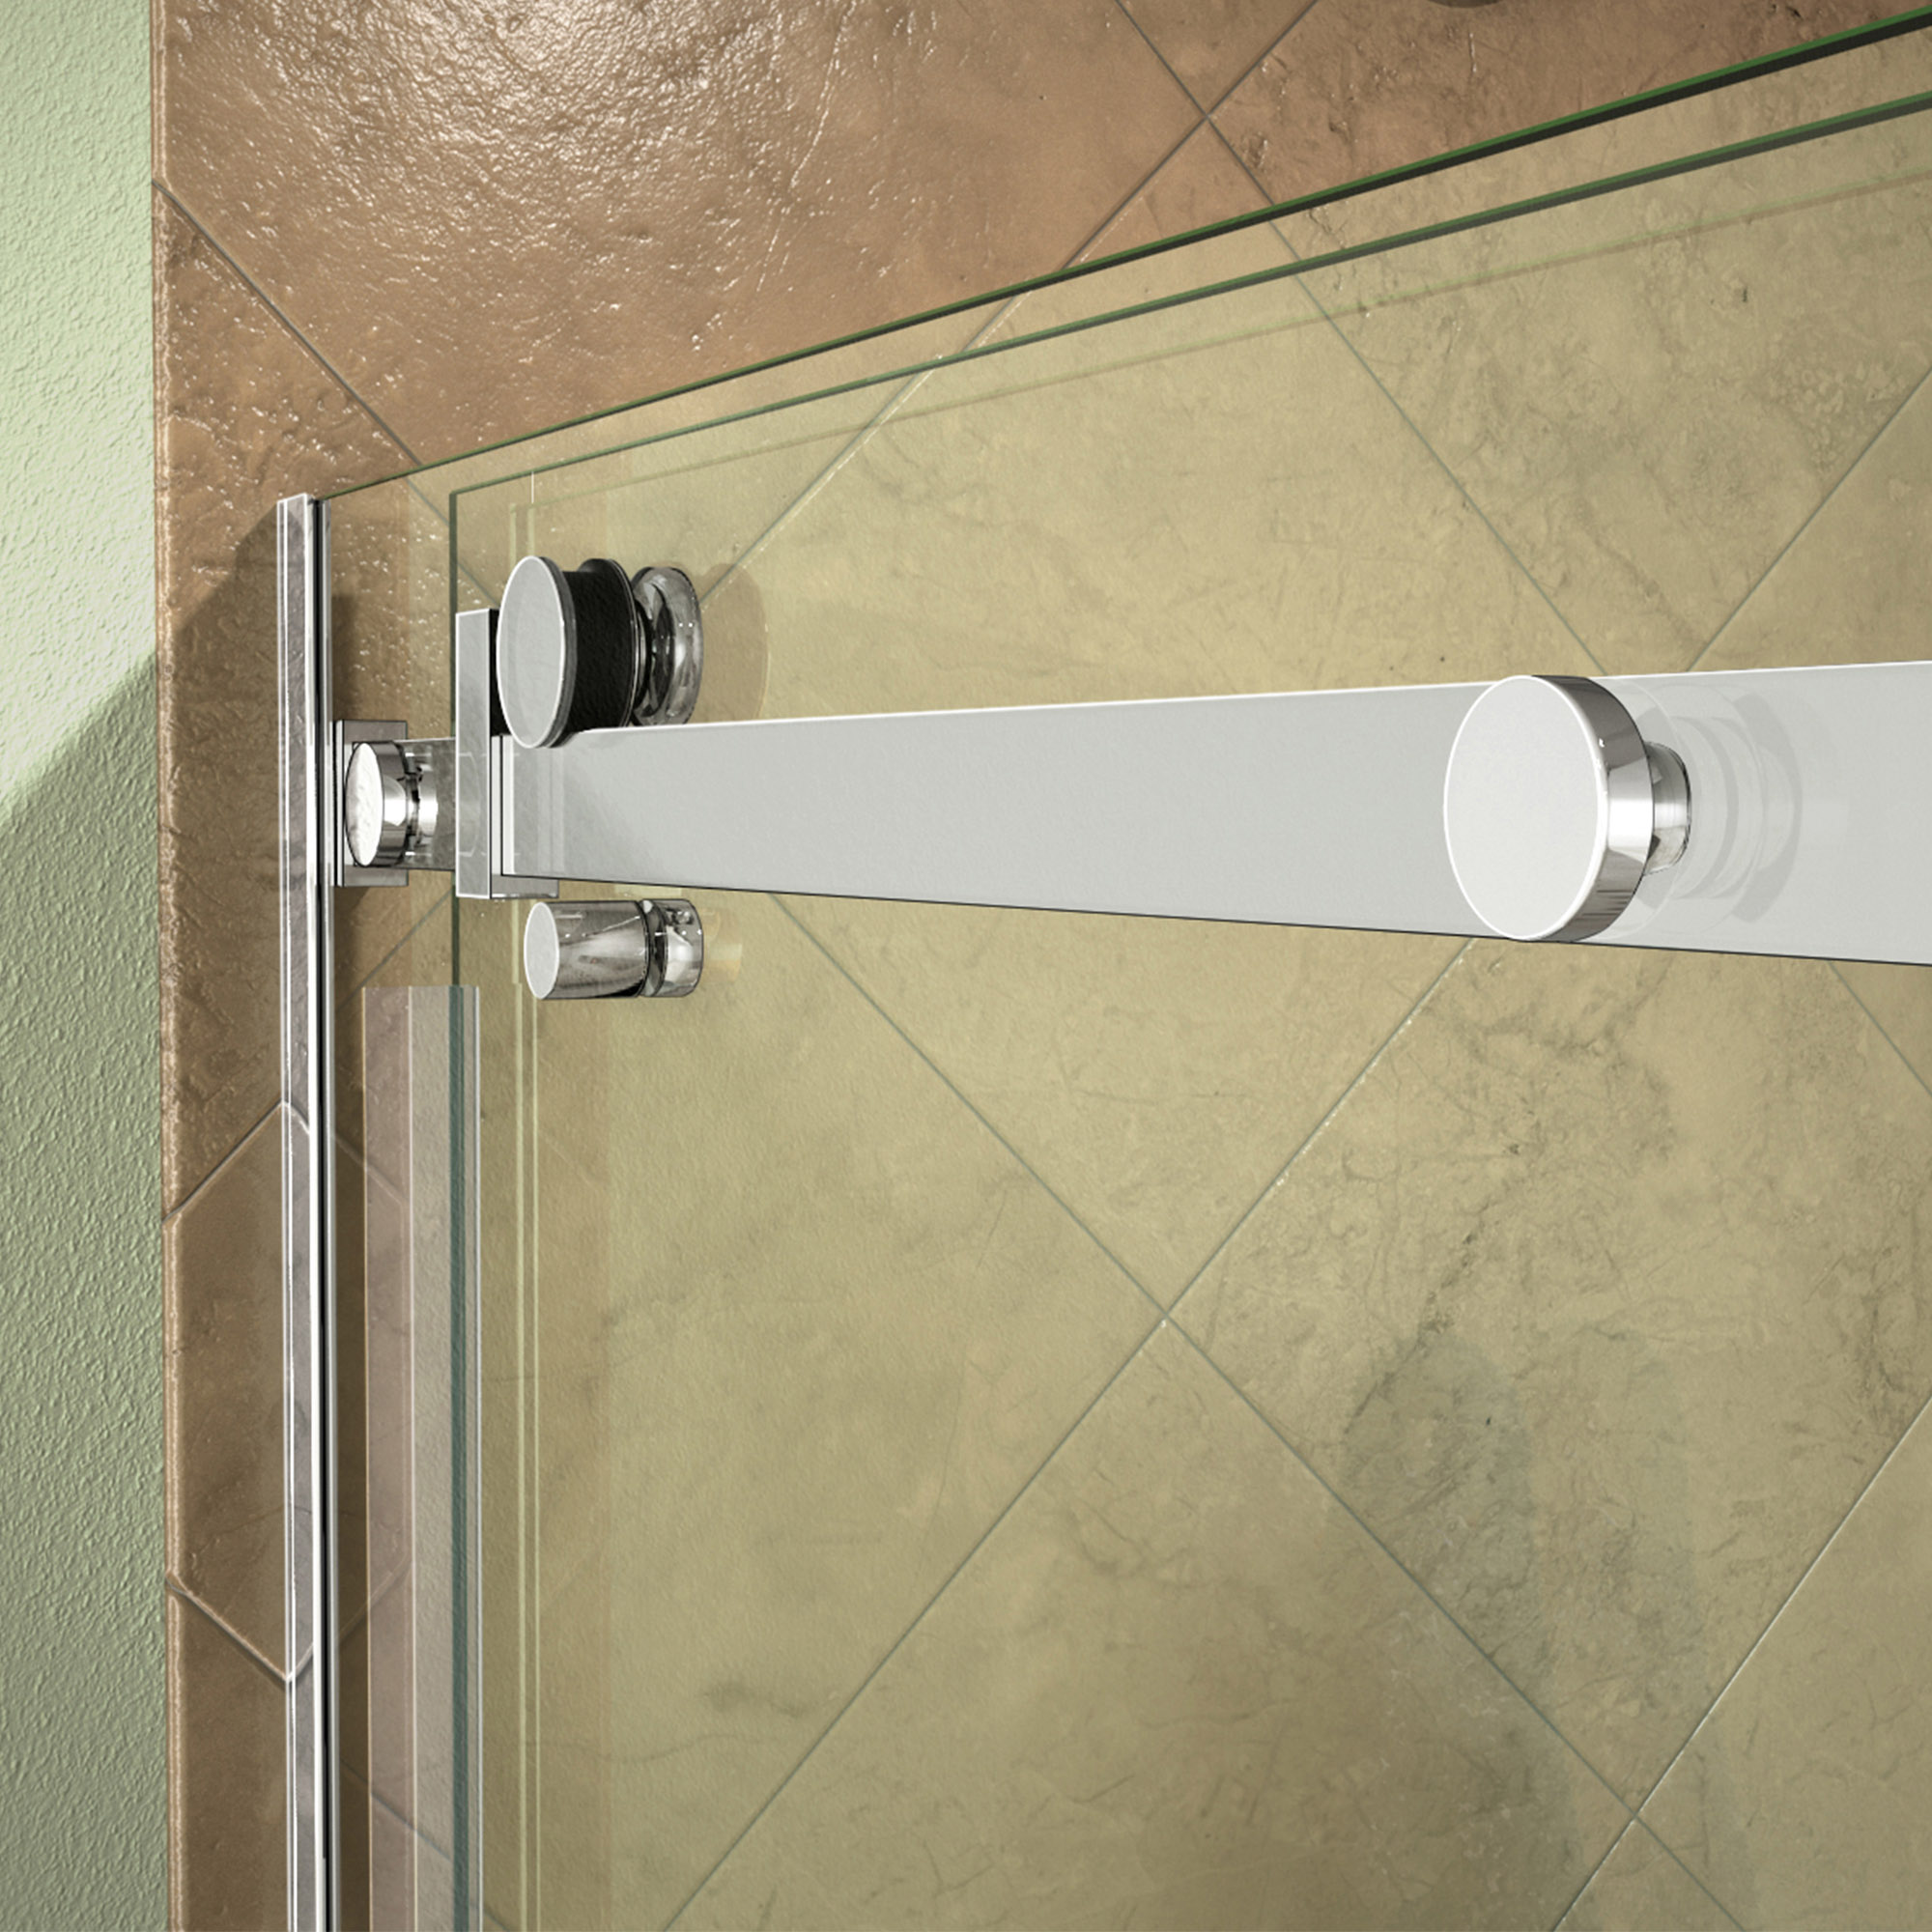 Dreamline shdr 64607610 07 enigma air 56 60 shower door in stainless steel for Stainless steel bathroom doors